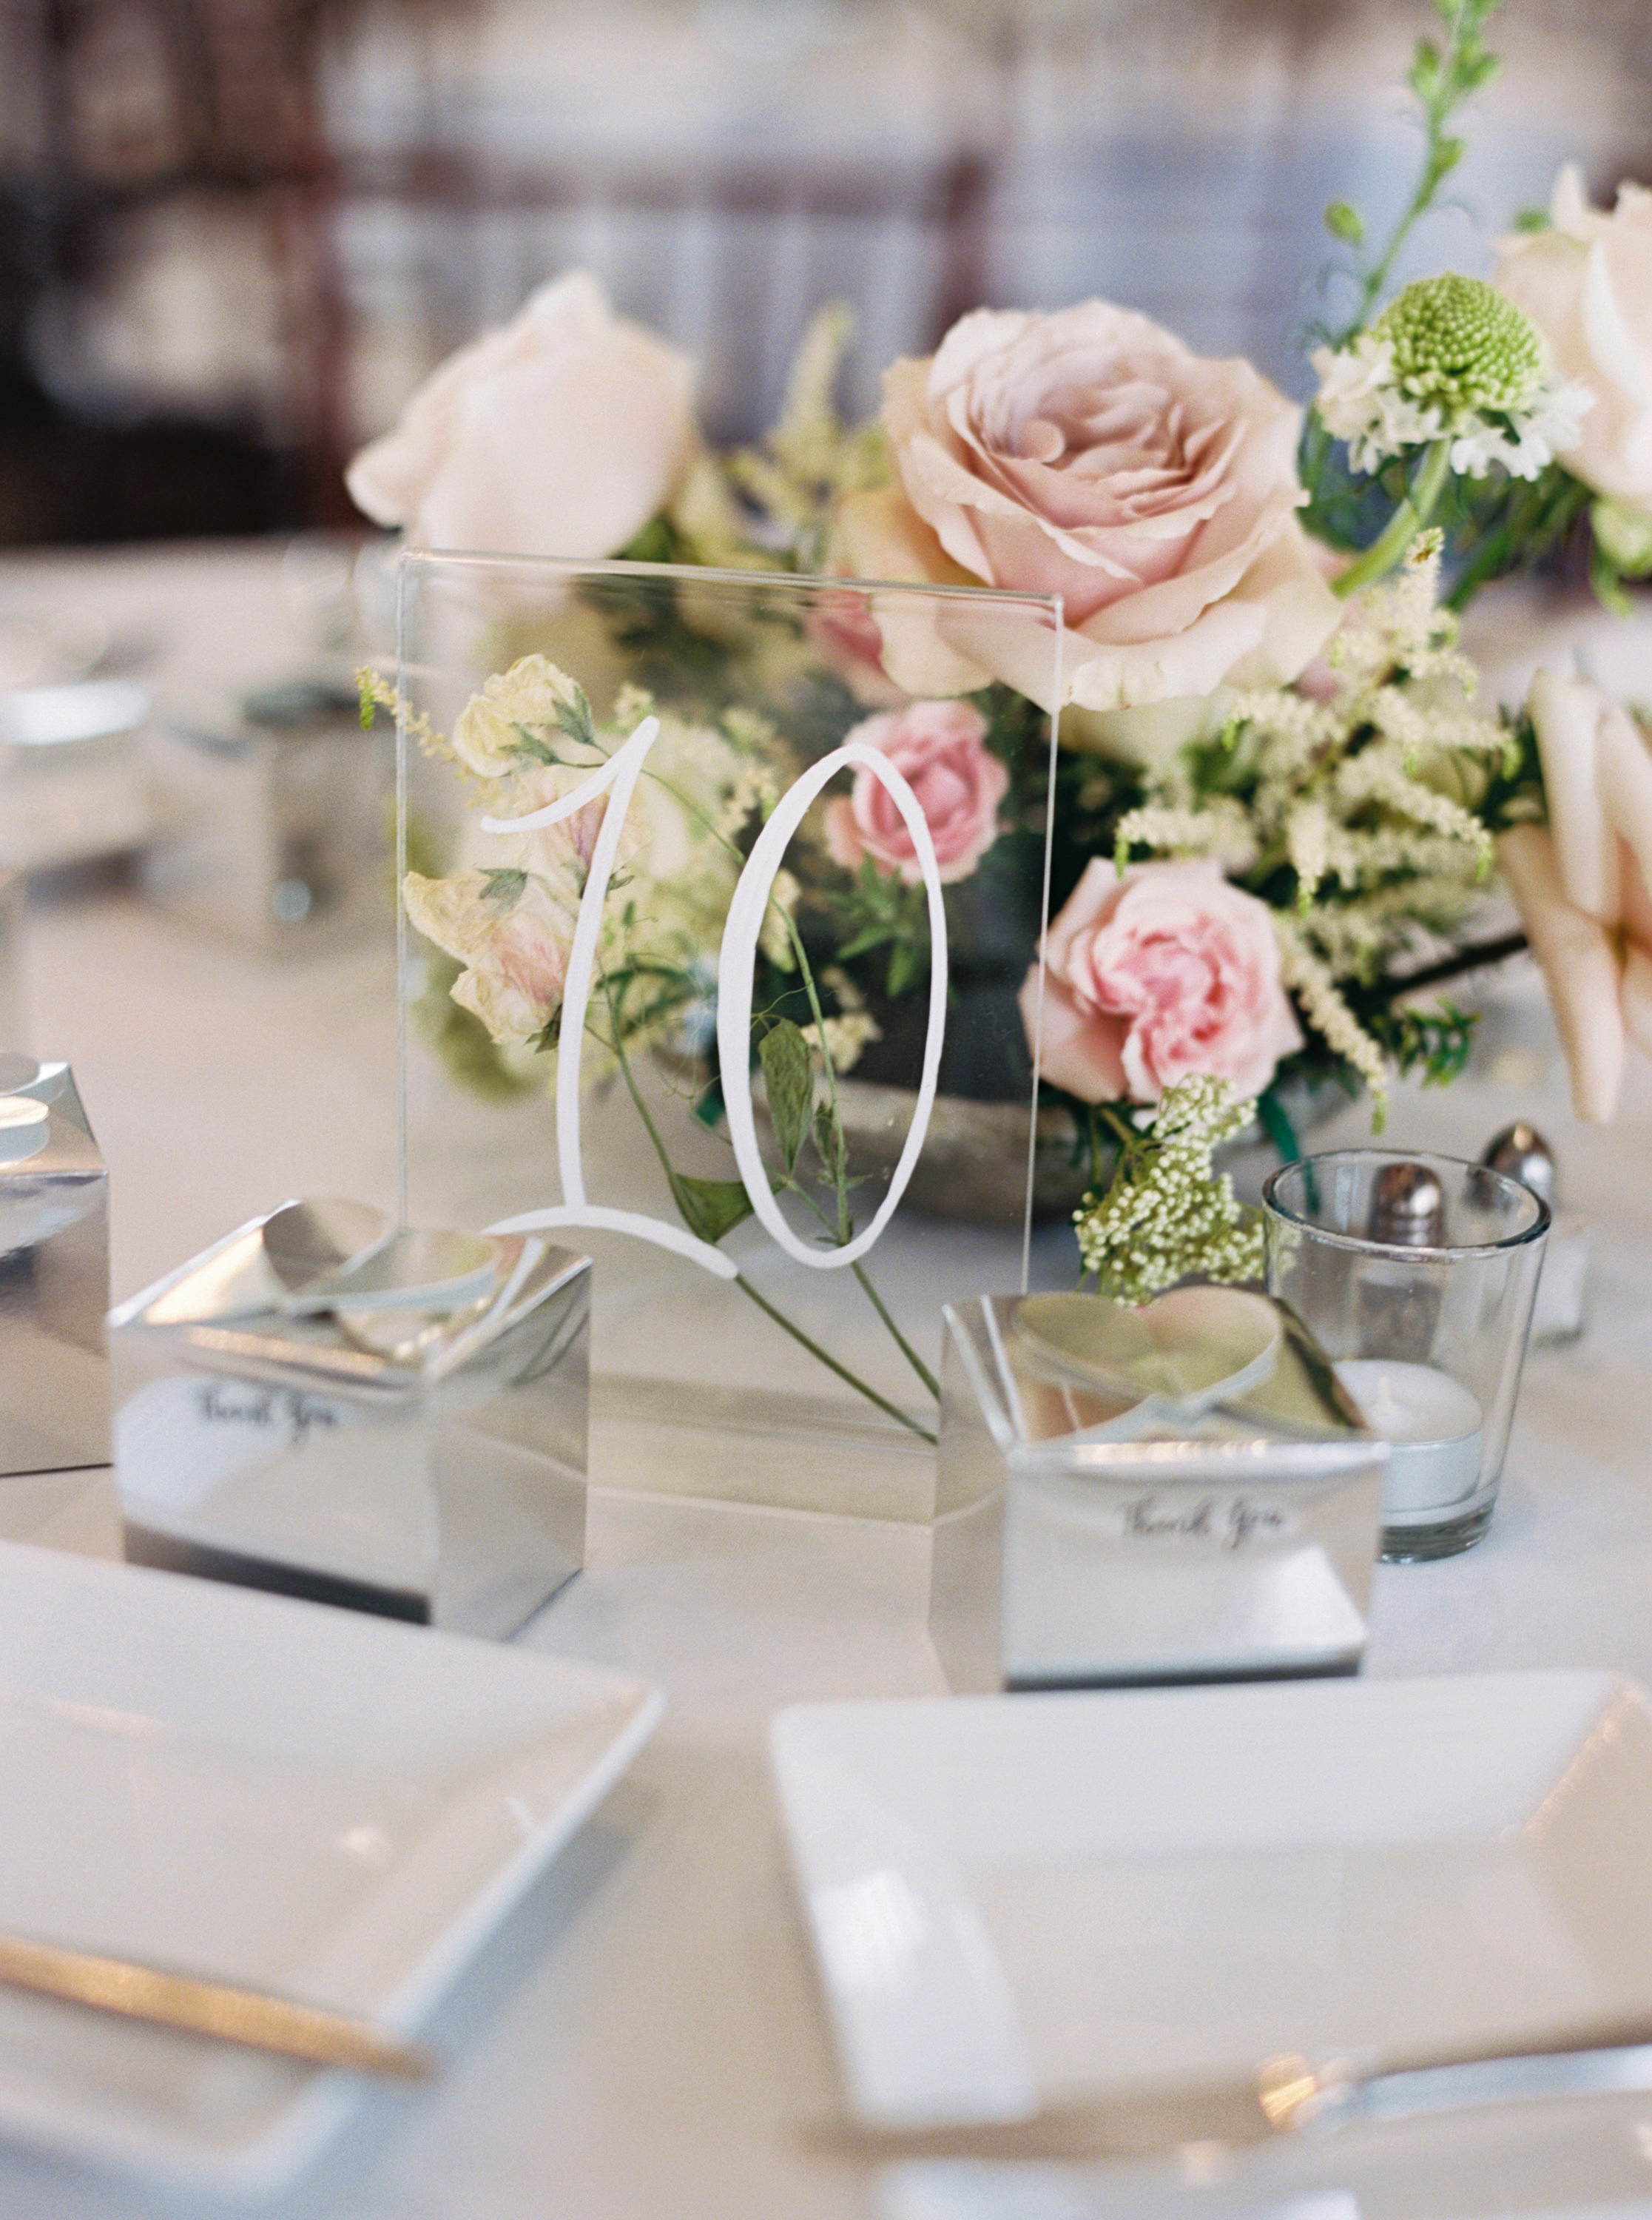 acrylic table numbers table setting thank you gifts